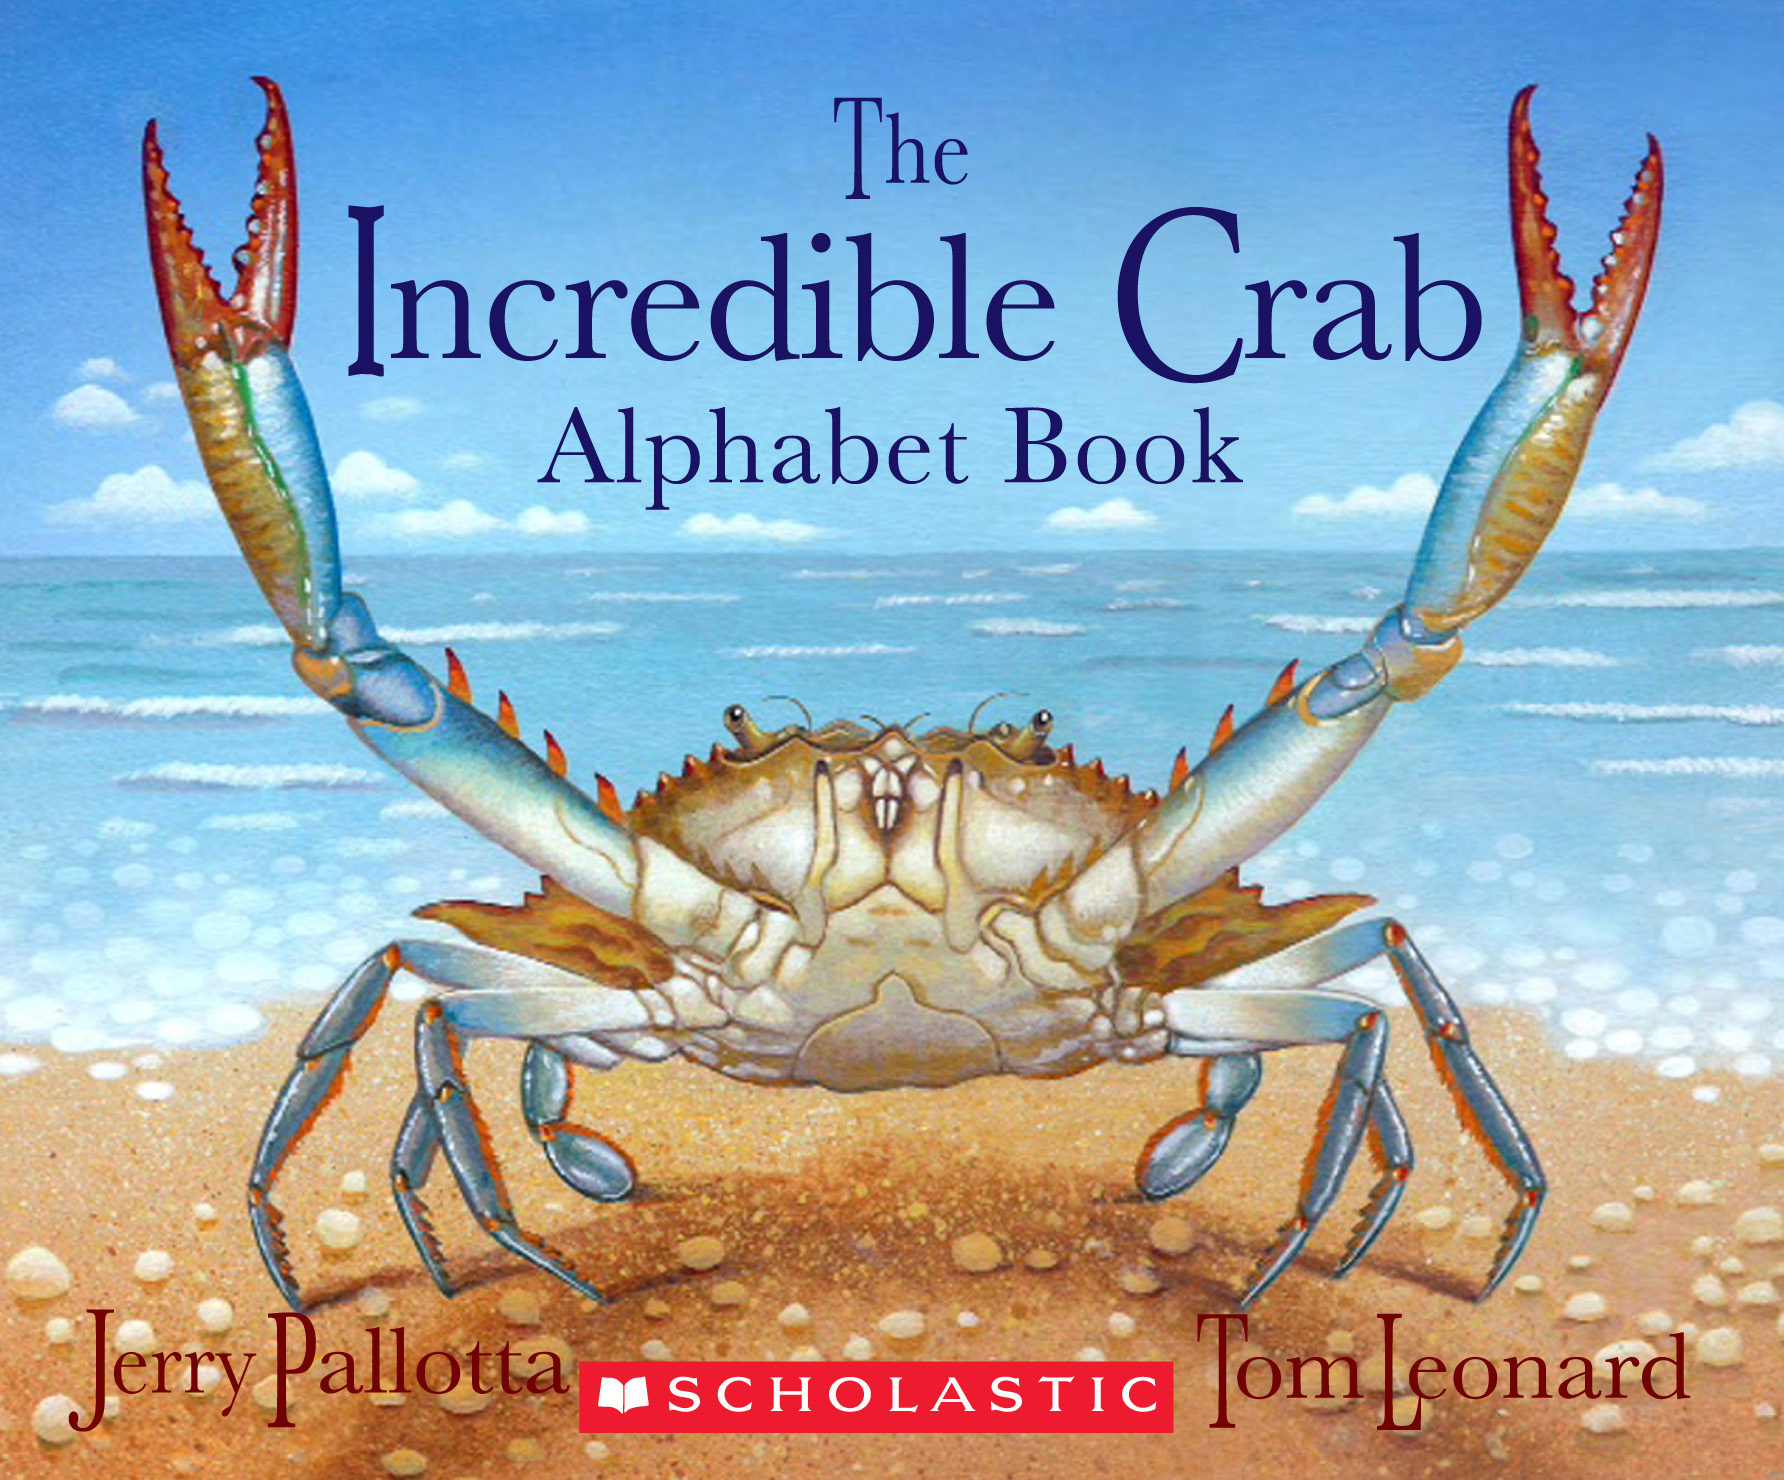 The Incredible Crab Alphabett